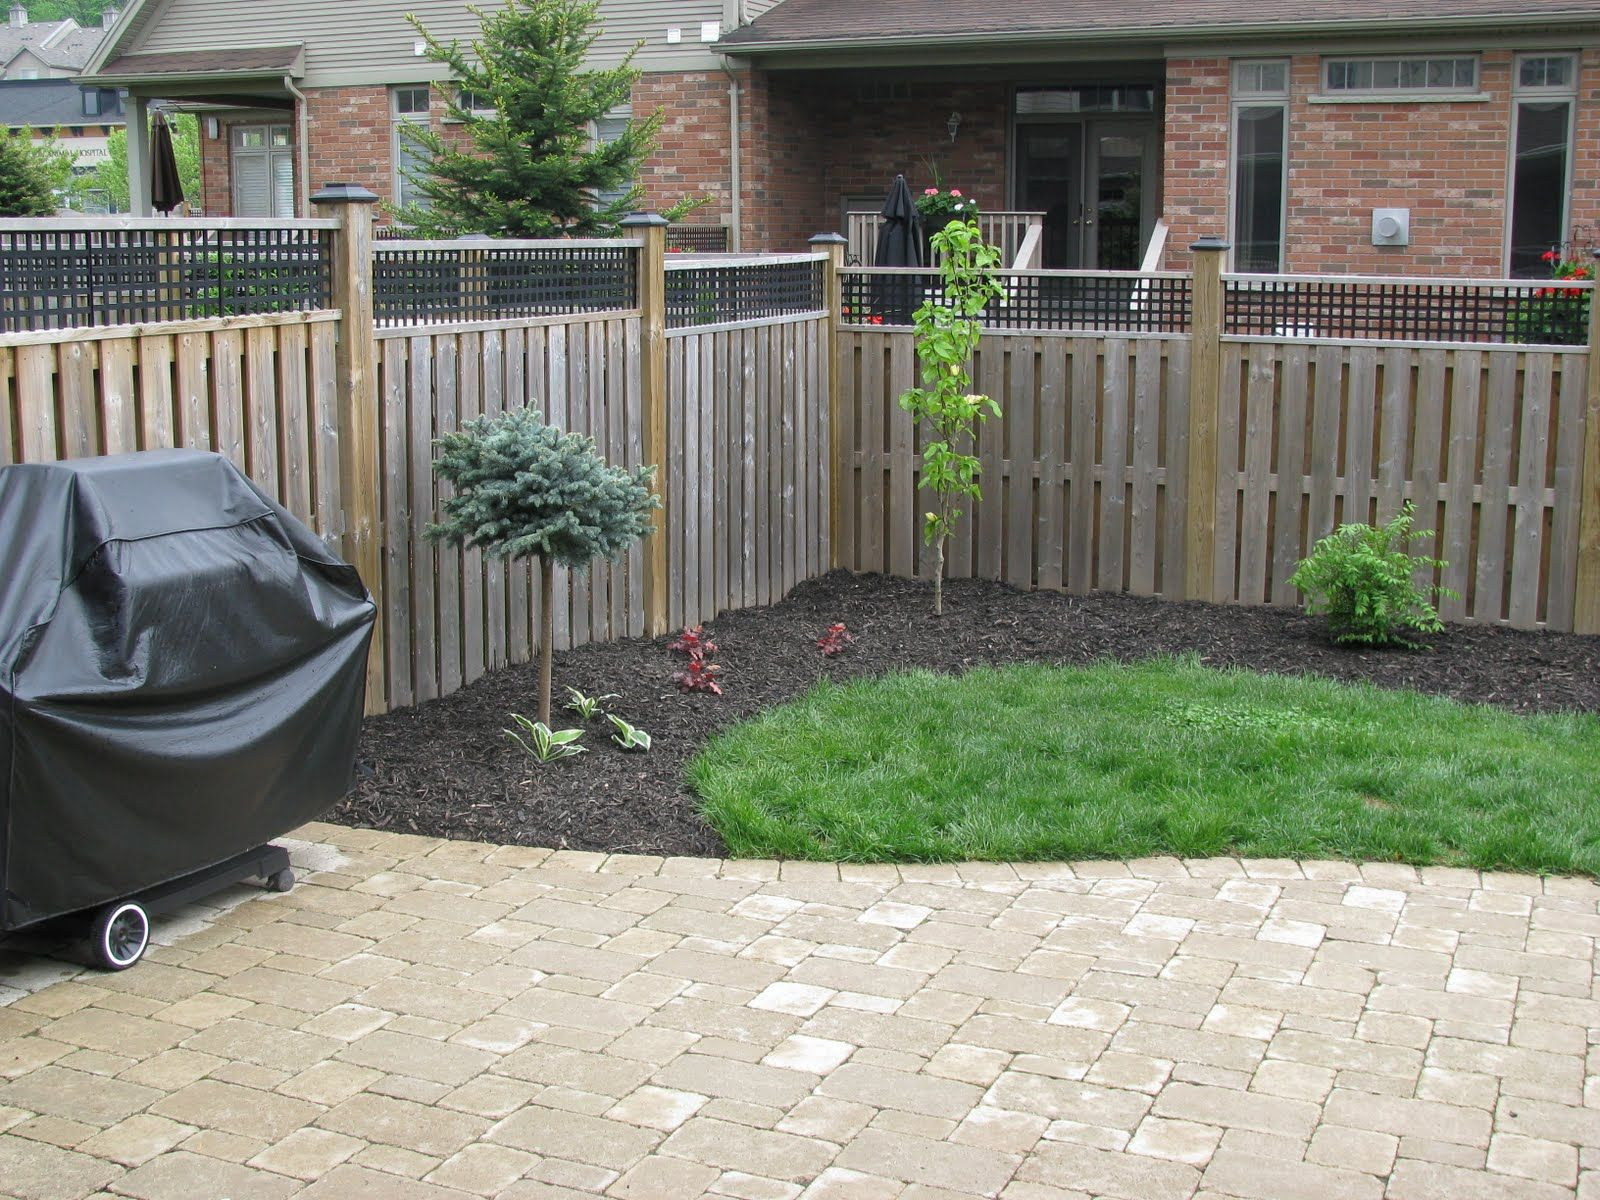 Townhouse Backyard Landscaping Ideas I Like The Color Of The Stone for Landscaping Small Backyards Townhouse